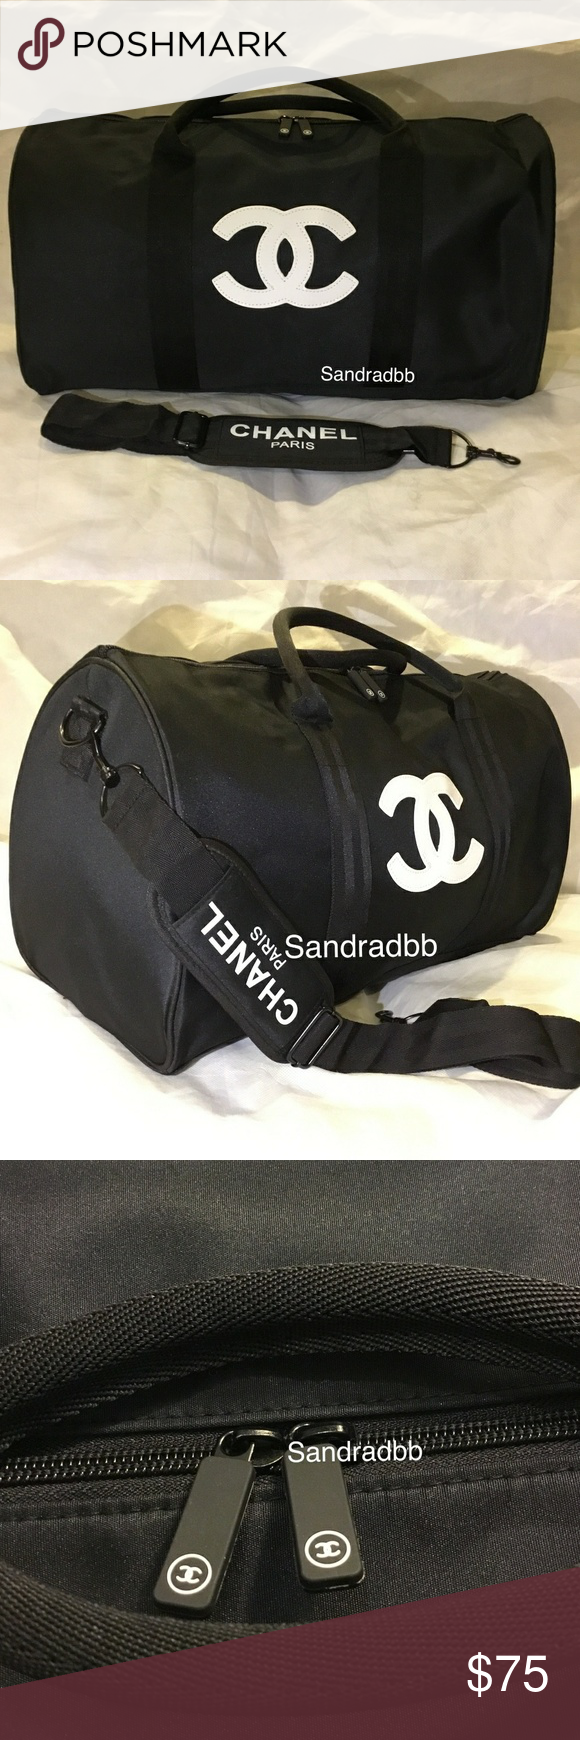 6038bc4dc3ea Authentic Chanel Duffle Travel Gym Weekend Bag VIP CHANEL VIP GIFT TRAVEL  BAG GYM BAG CROSS